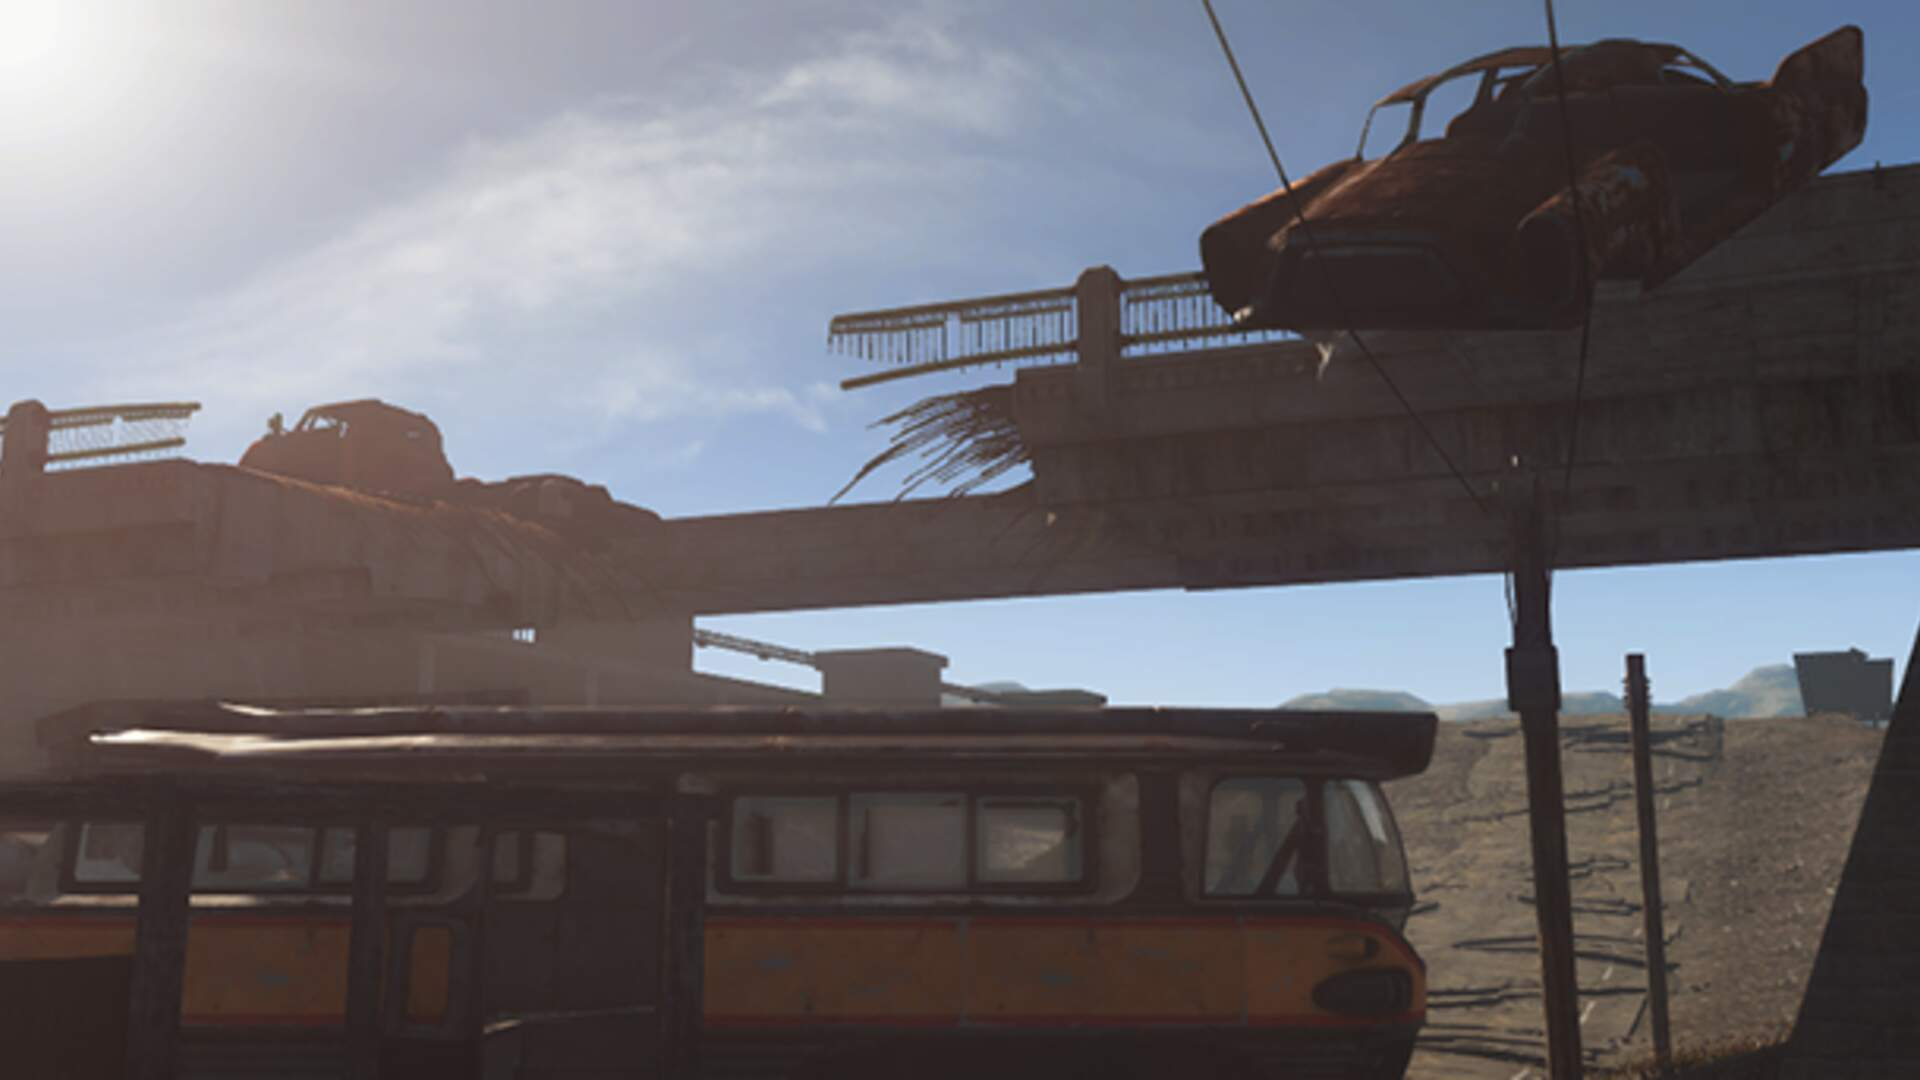 Fallout 4's New Vegas Mod Overhauls More Than Just Graphics